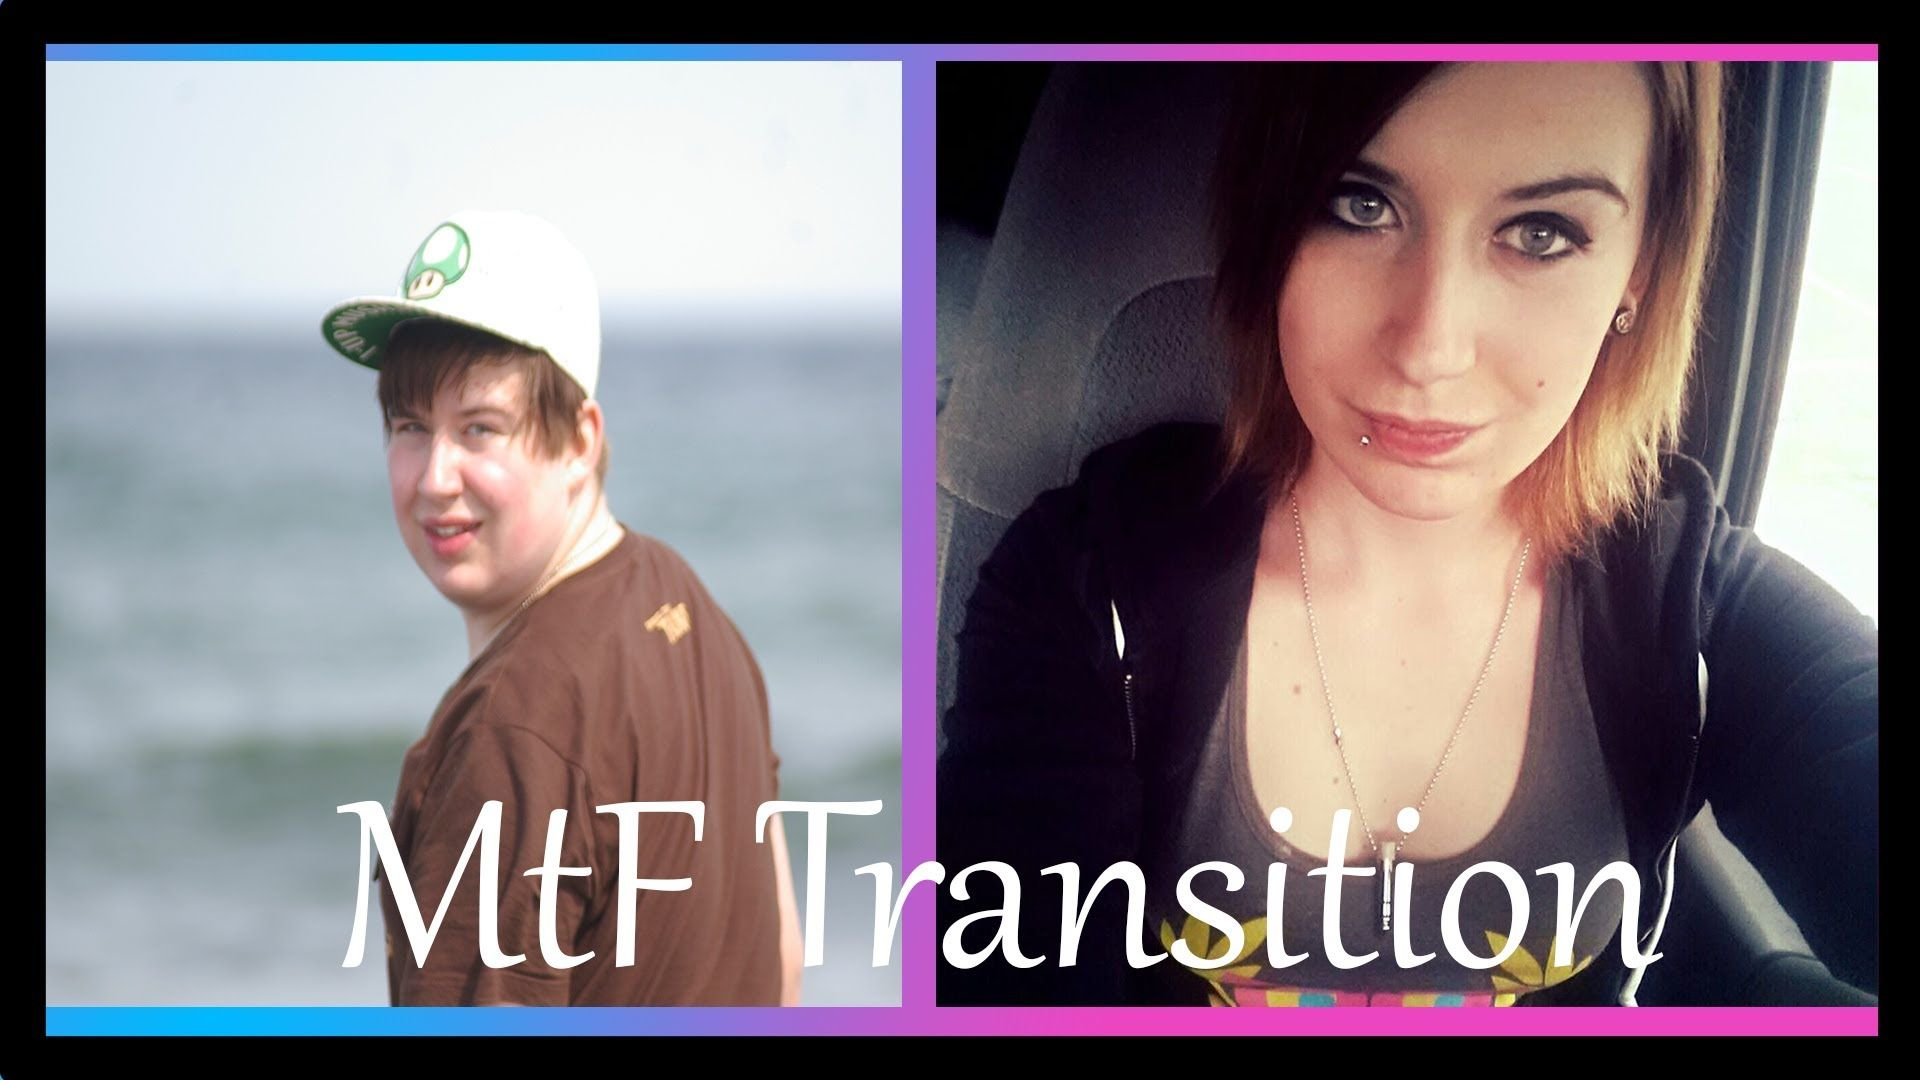 Transvestite transformation video